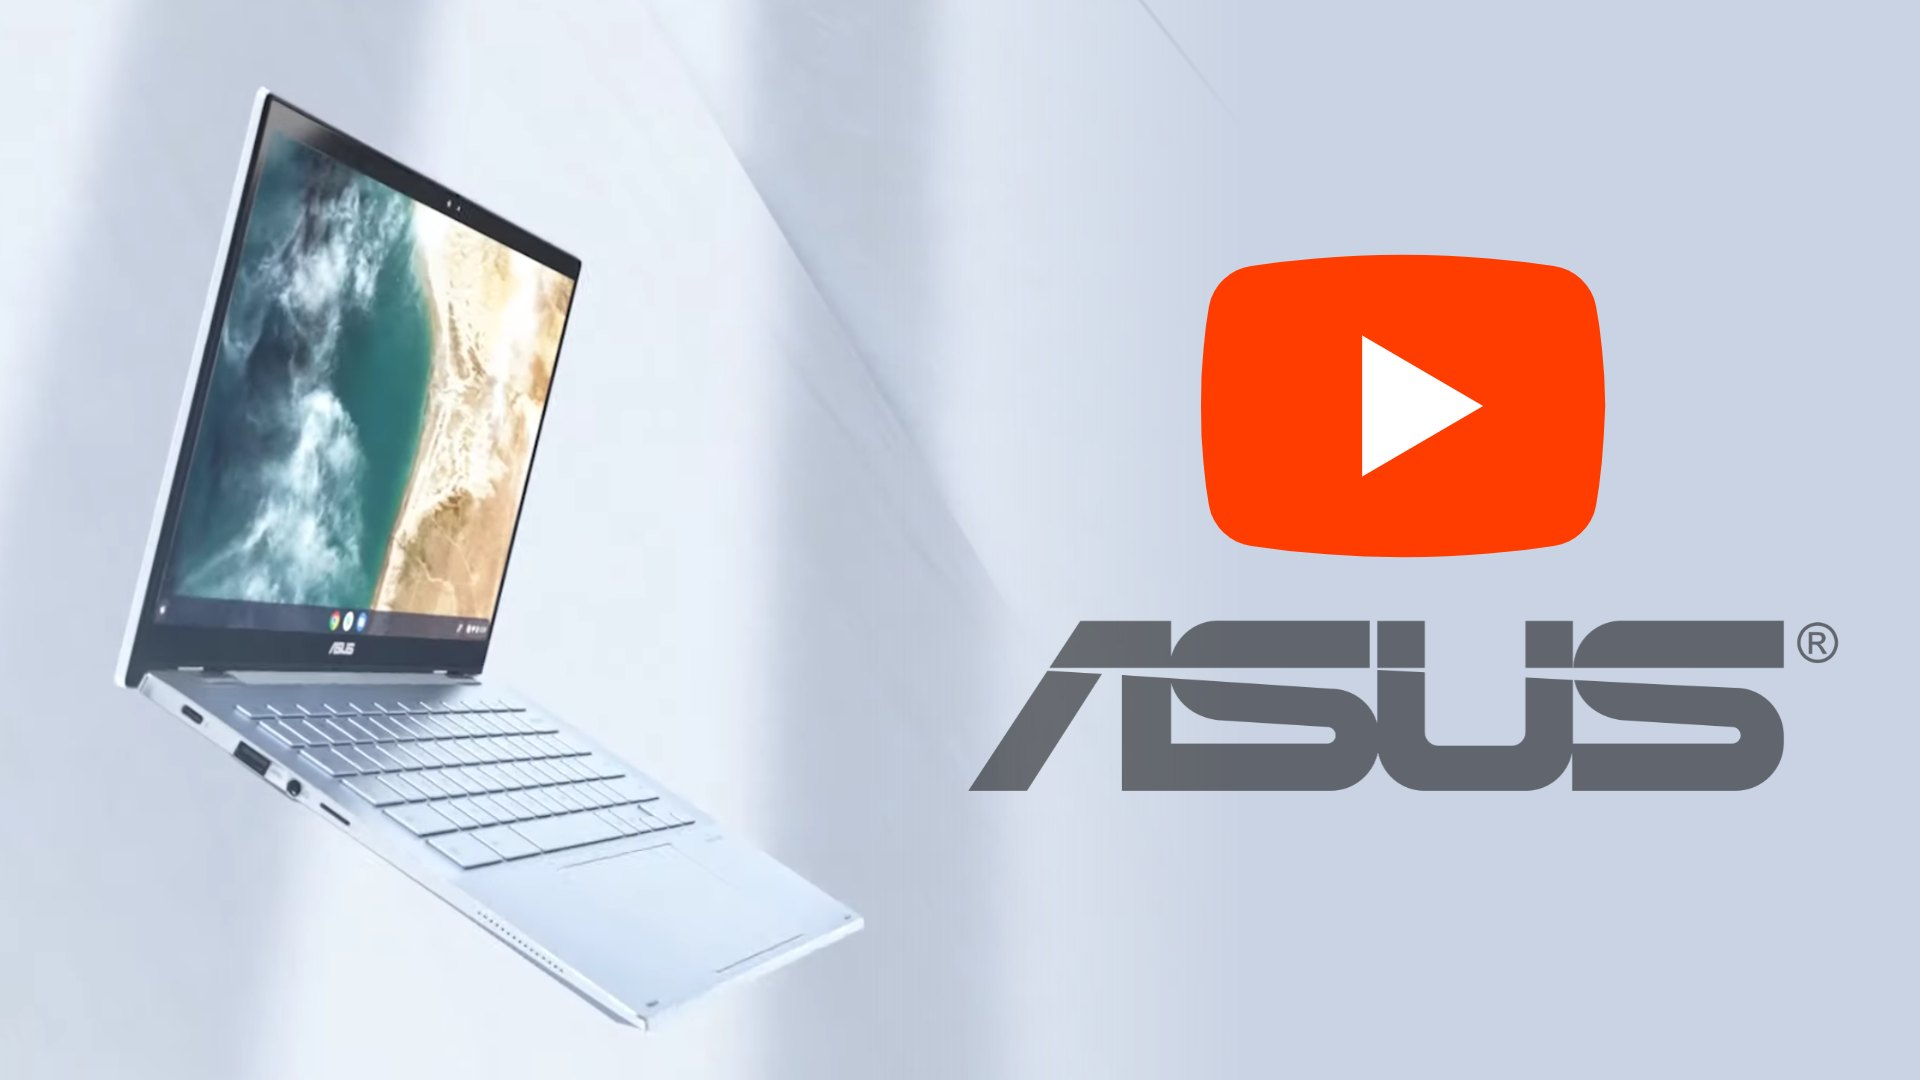 Get hyped for the new ASUS Flip CX5400 with this quick sizzle video